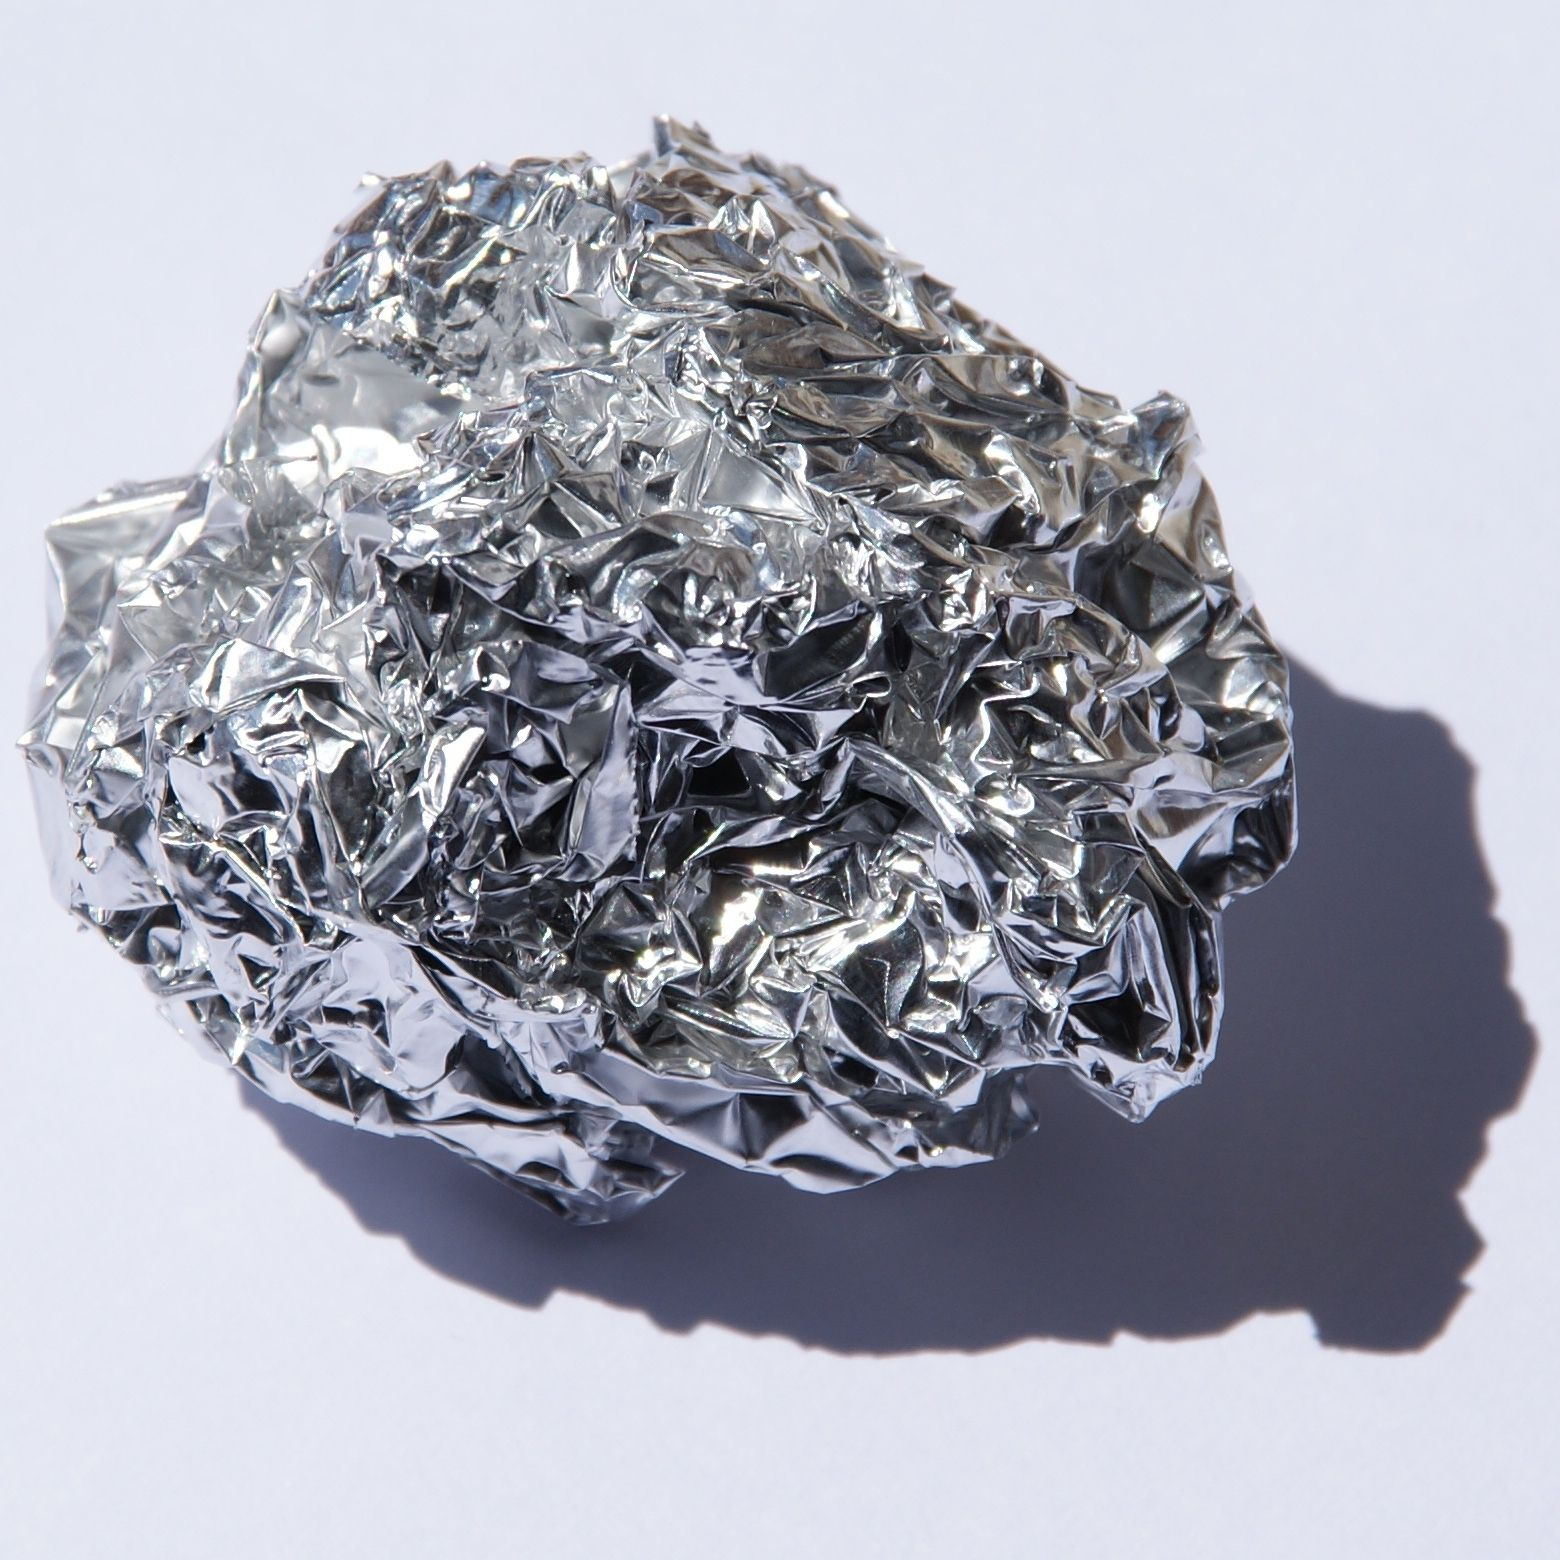 Soiled aluminium foil recycled into catalyst